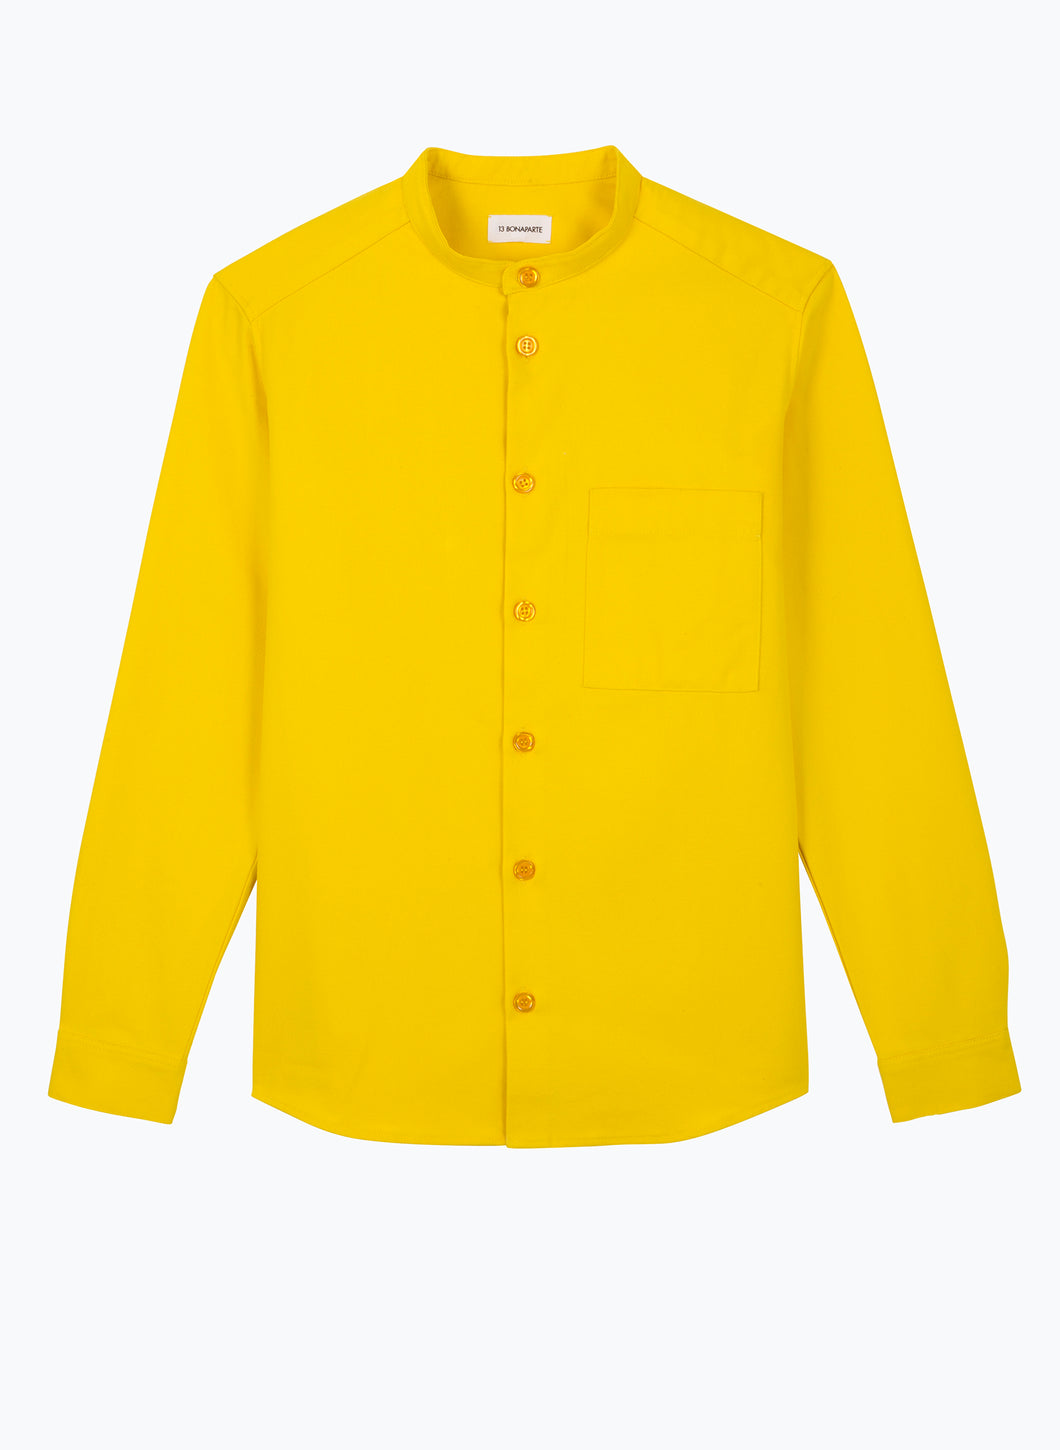 Mandarin Collar Overshirt in Yellow Canvas